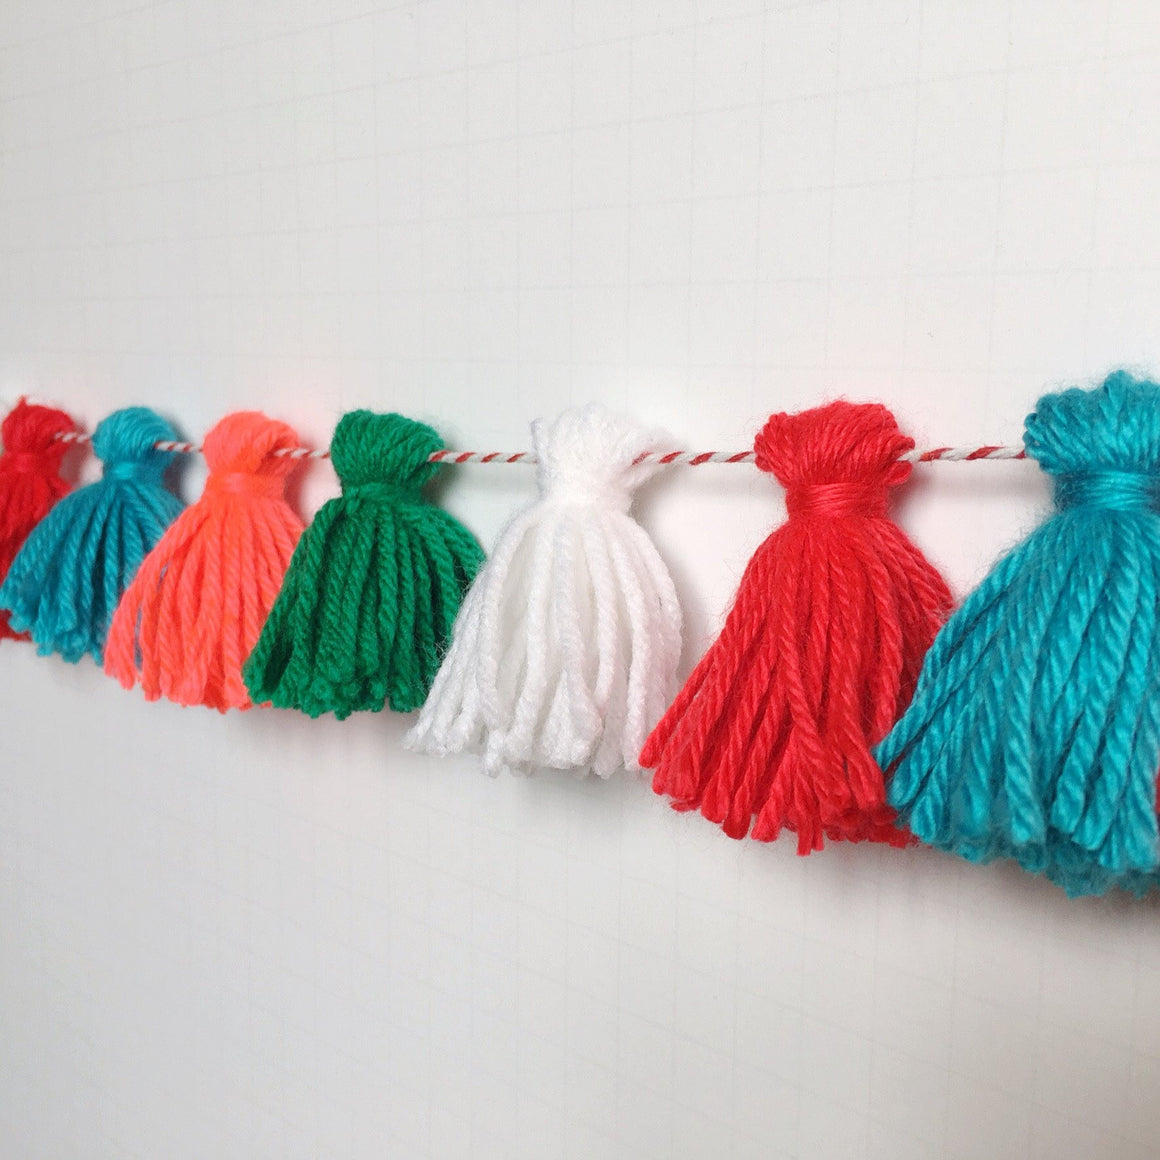 MERRY + BRIGHT TASSEL GARLAND, Tassel Garland, BON + CO - Bon + Co. Party Studio